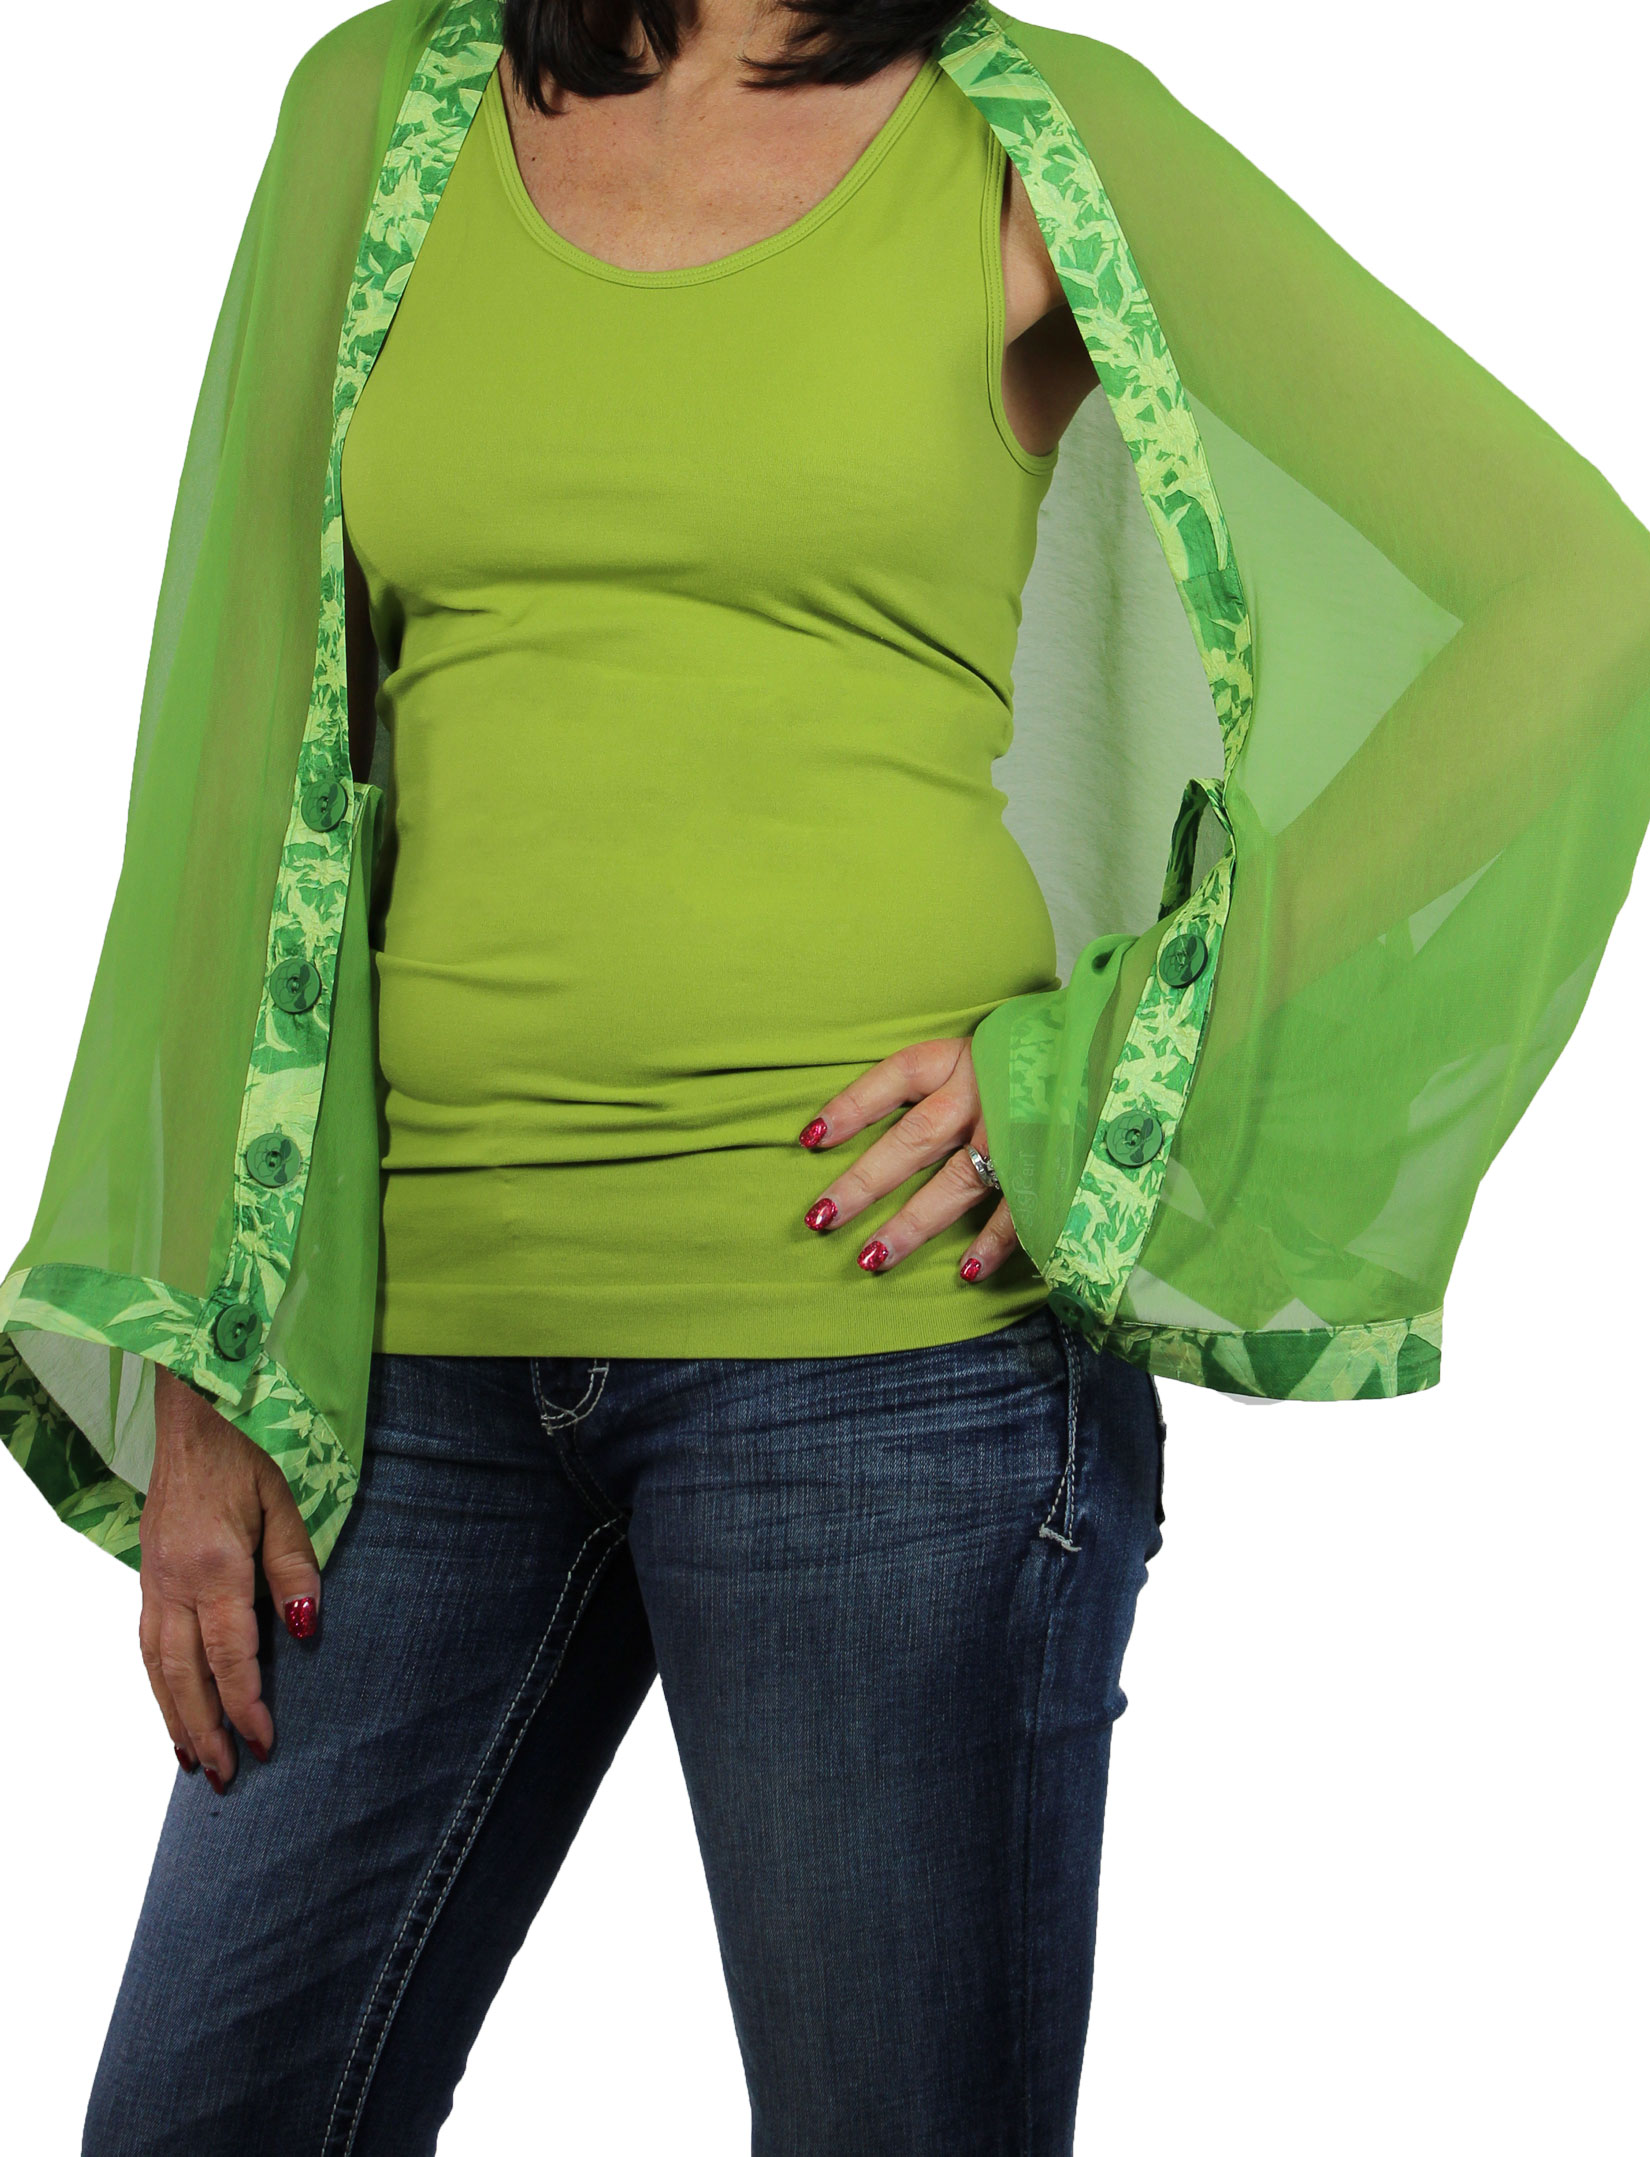 Wholesale Origami - Three Quarter Sleeve Green with Emerald-Lime Trim -